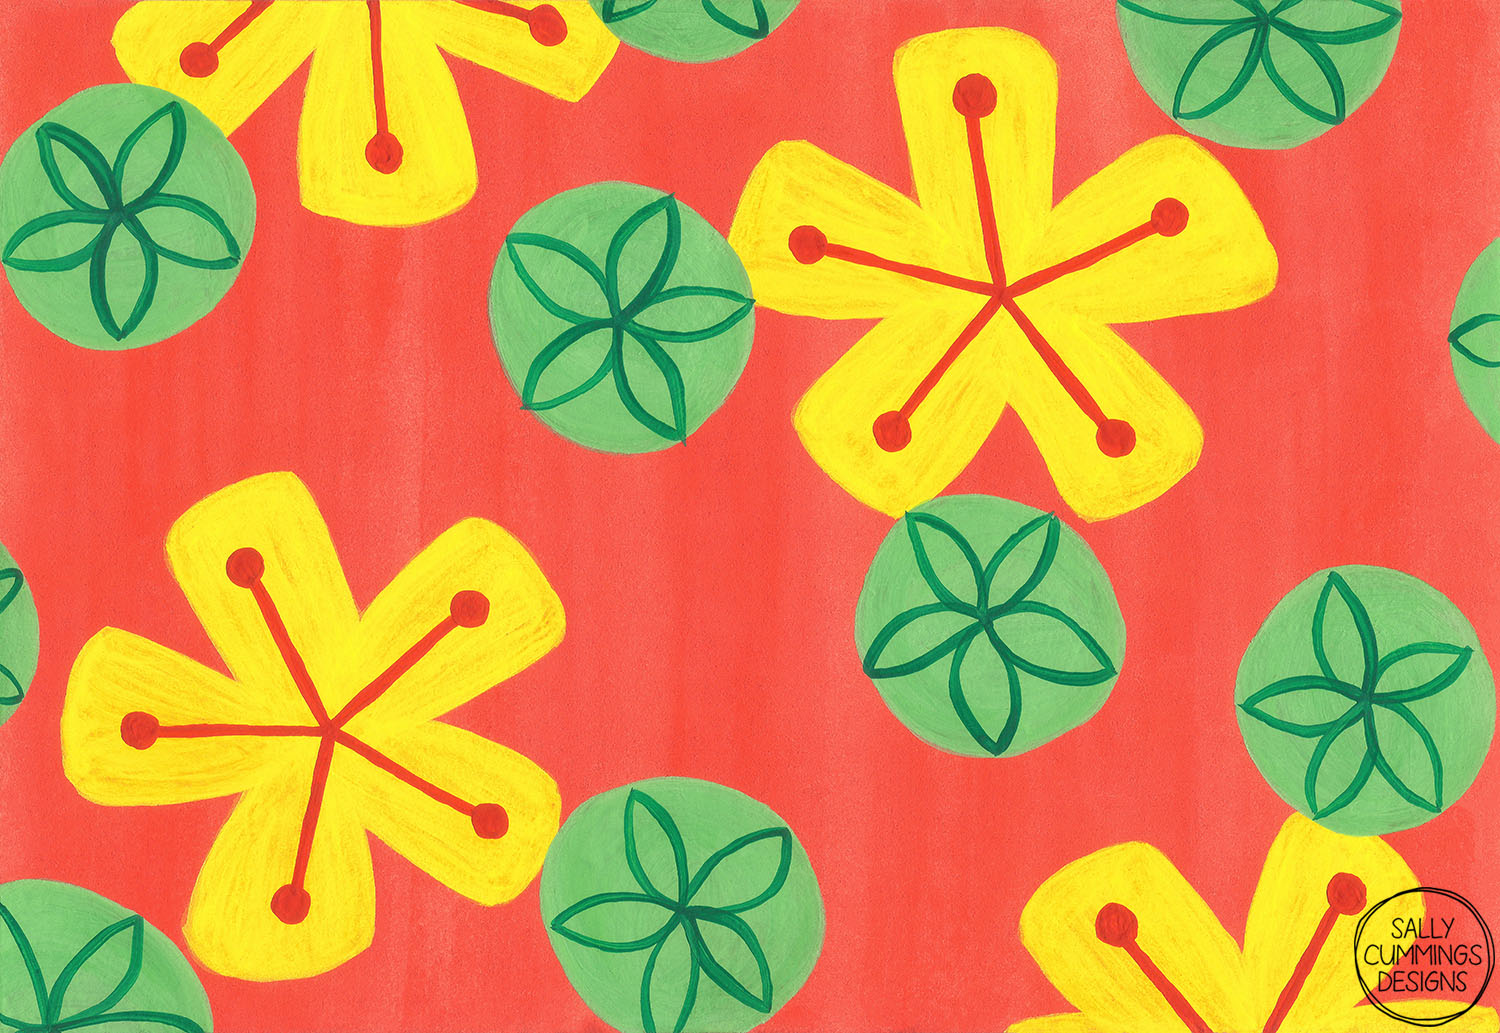 Sally Cummings Designs - Bright Retro Floral